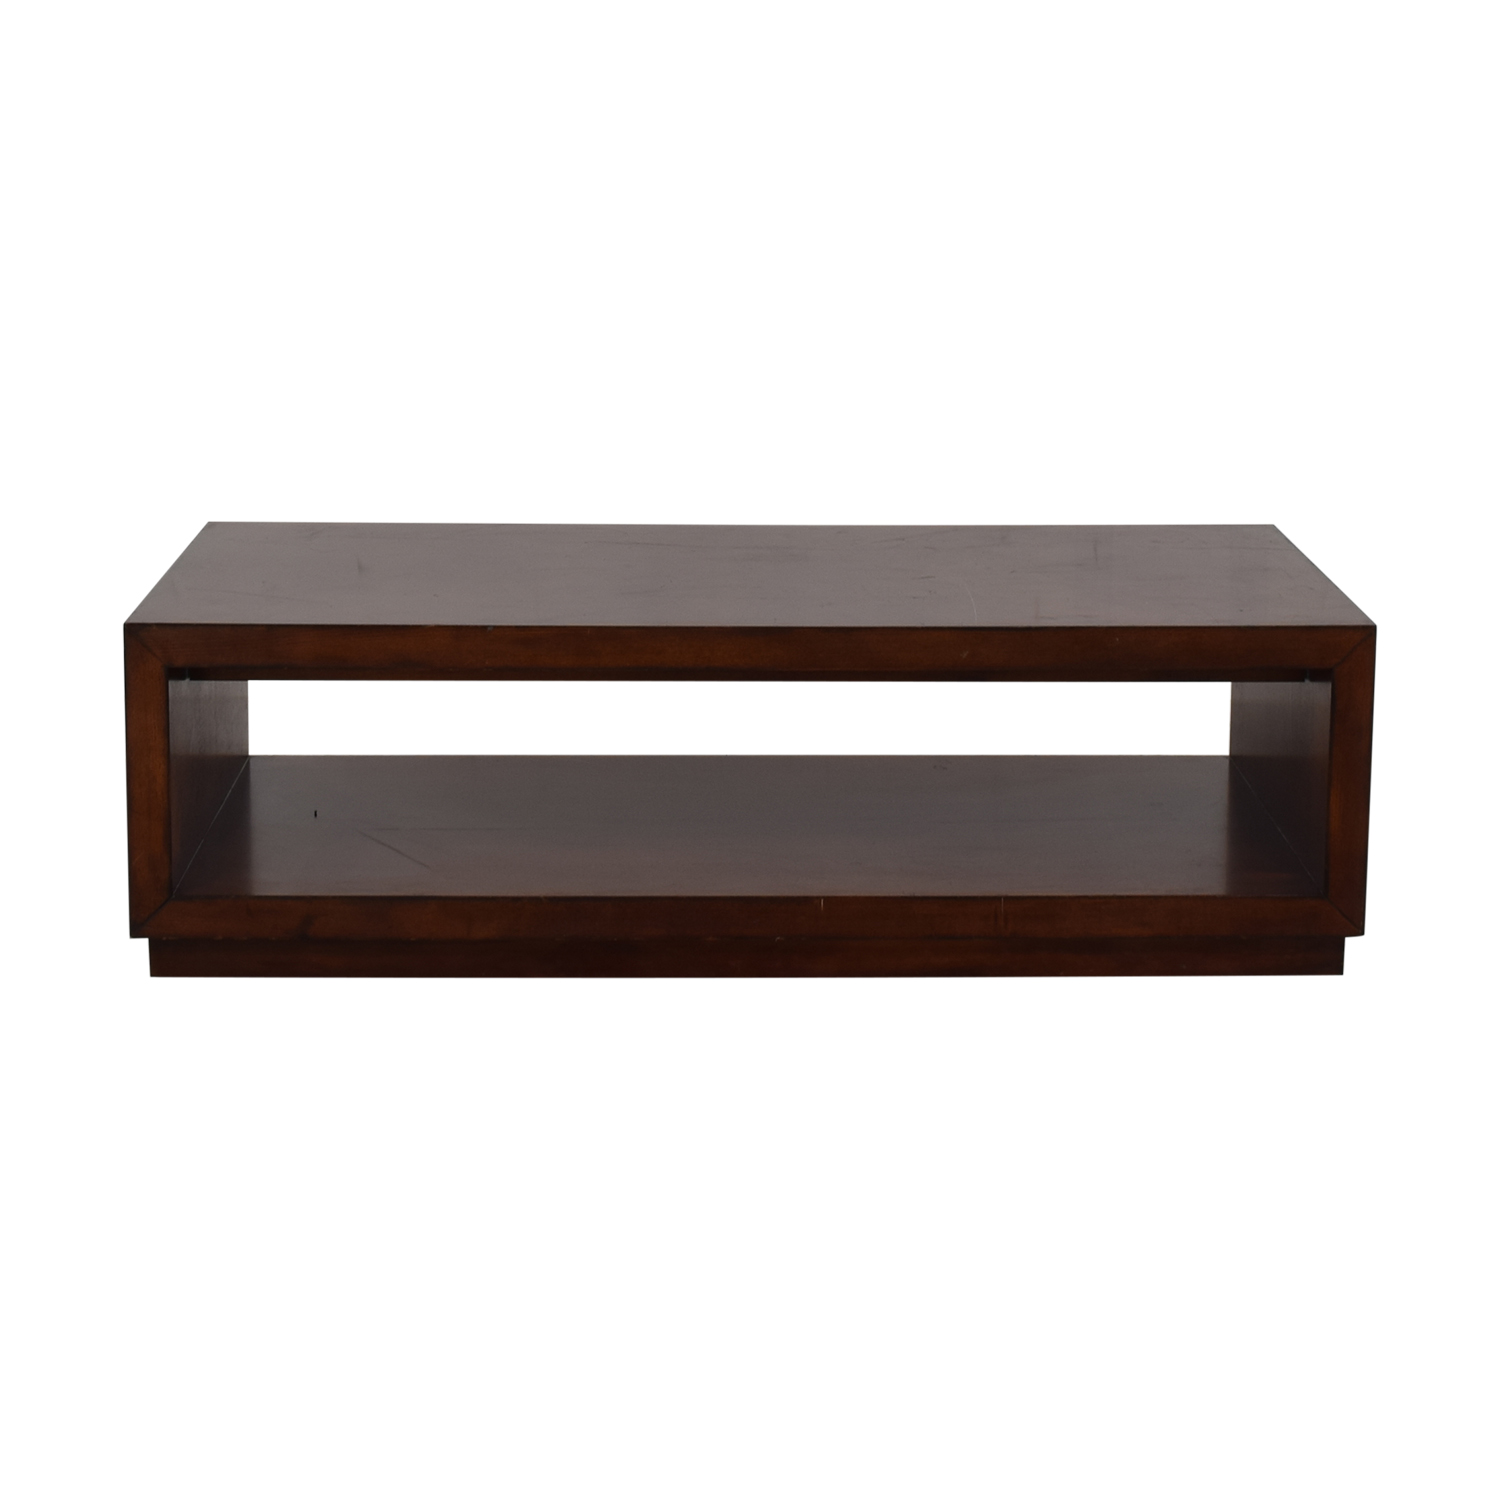 Mitchell Gold + Bob Williams Coffee Table / Coffee Tables